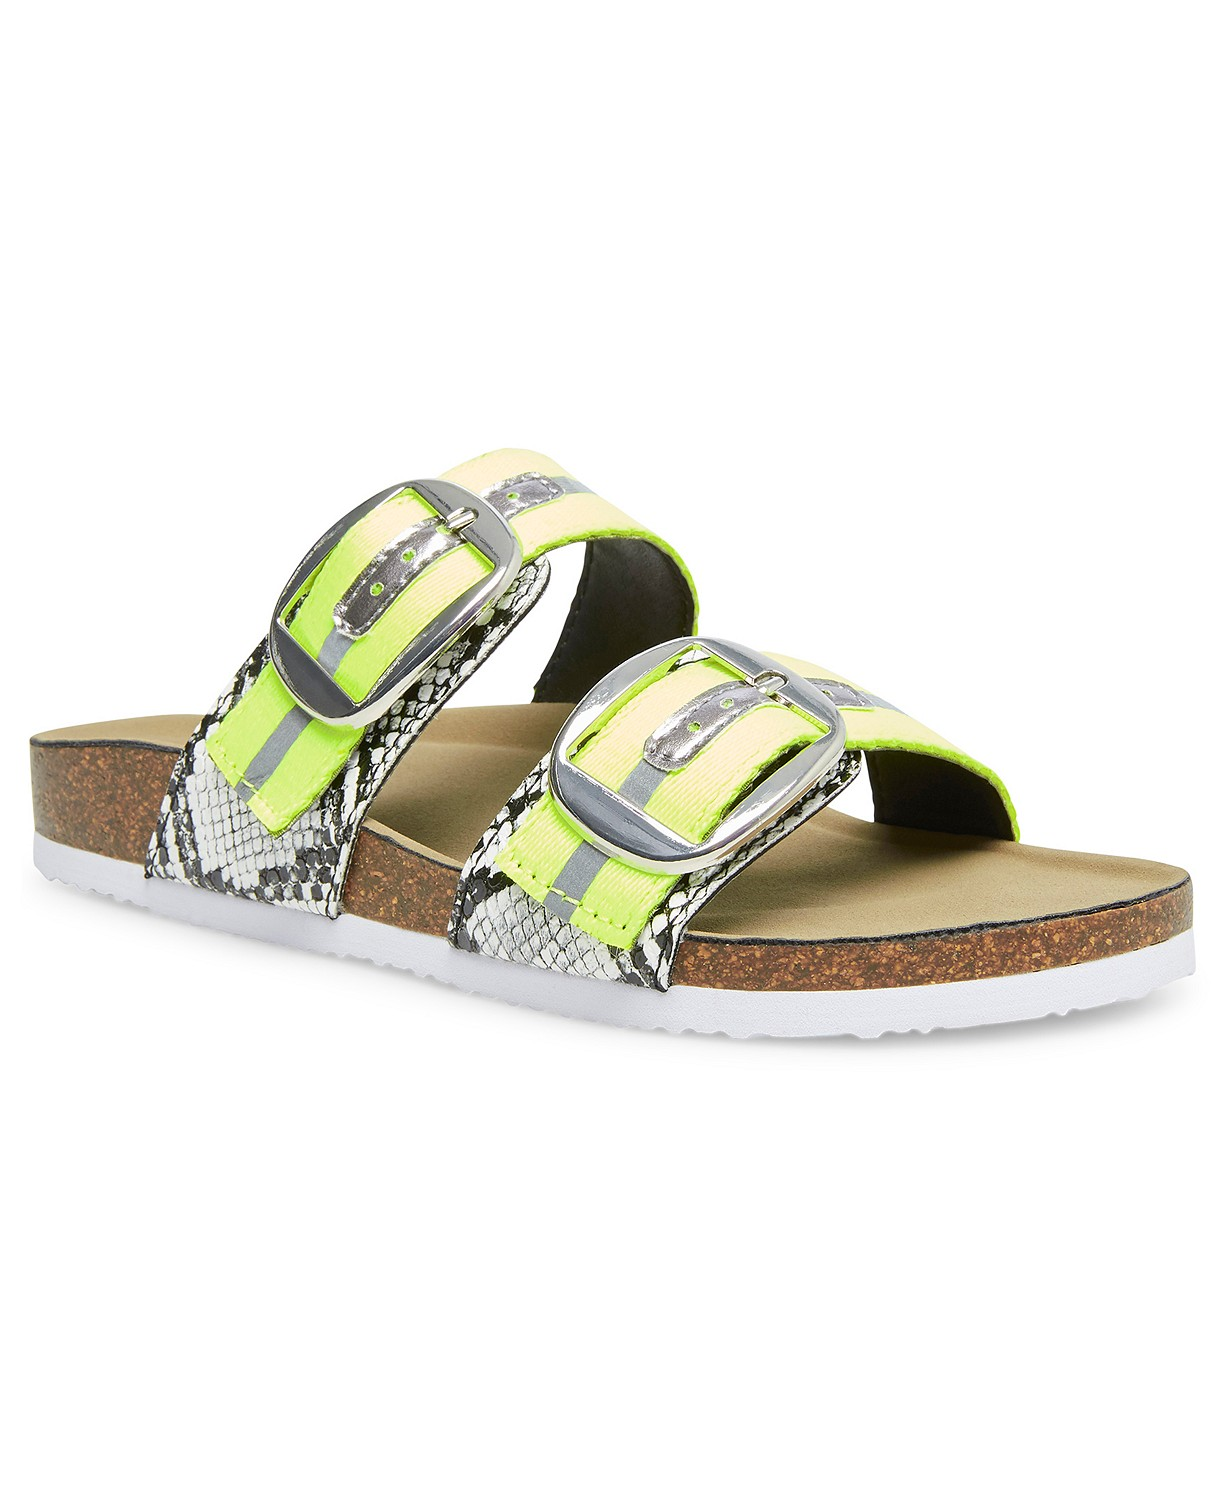 Bambam Footbed Sandals- ONLY .92! Shop Macy's Clearance!